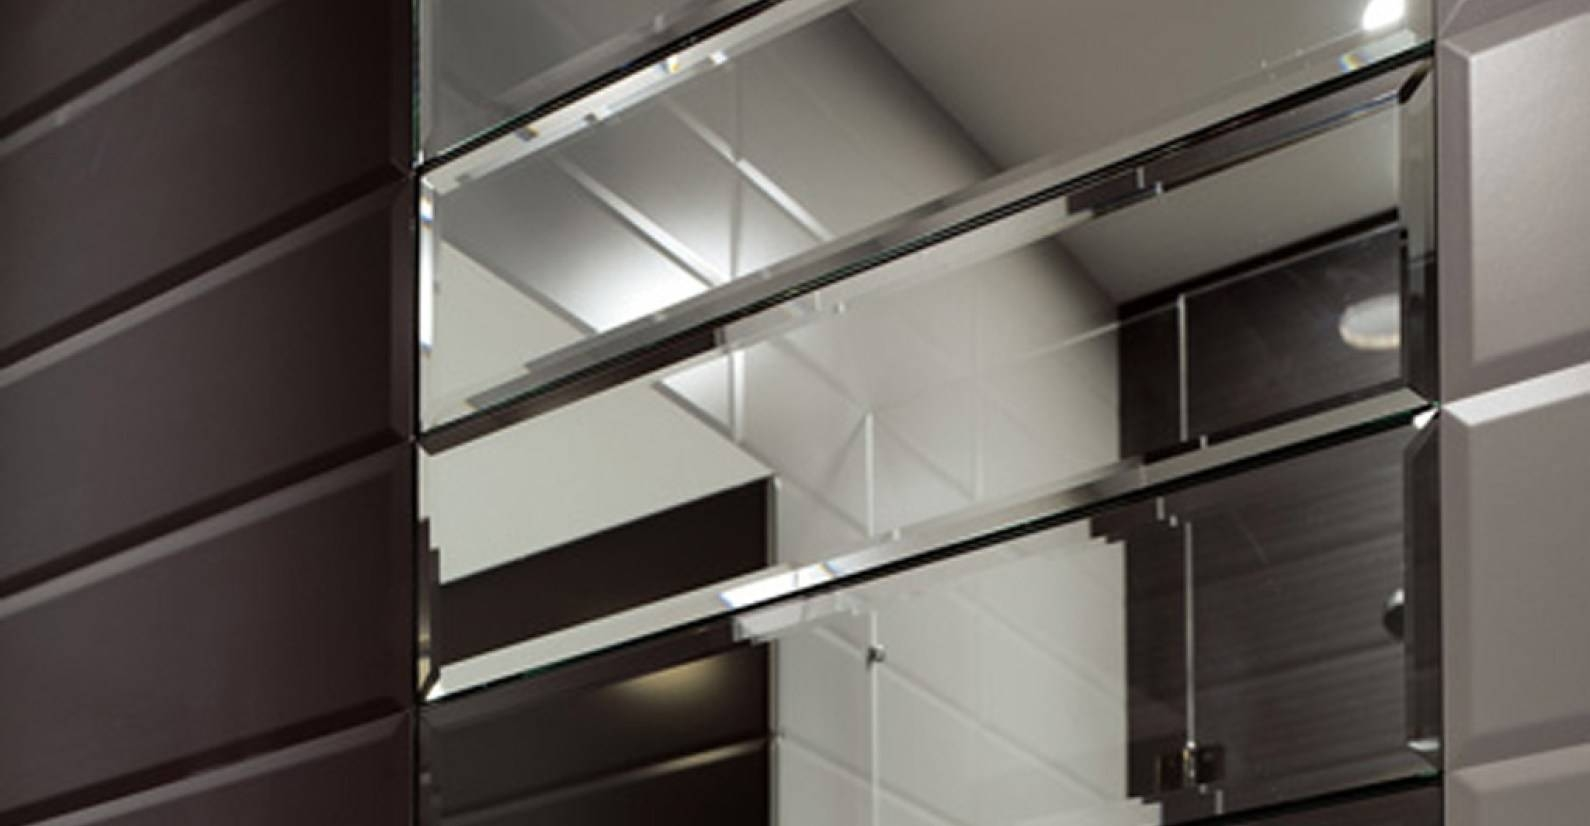 Mirror : Excellent Wall Art Mirrors Modern Uk Chester Mirror Intended For Best And Newest Wall Art Mirrors Contemporary (View 17 of 20)